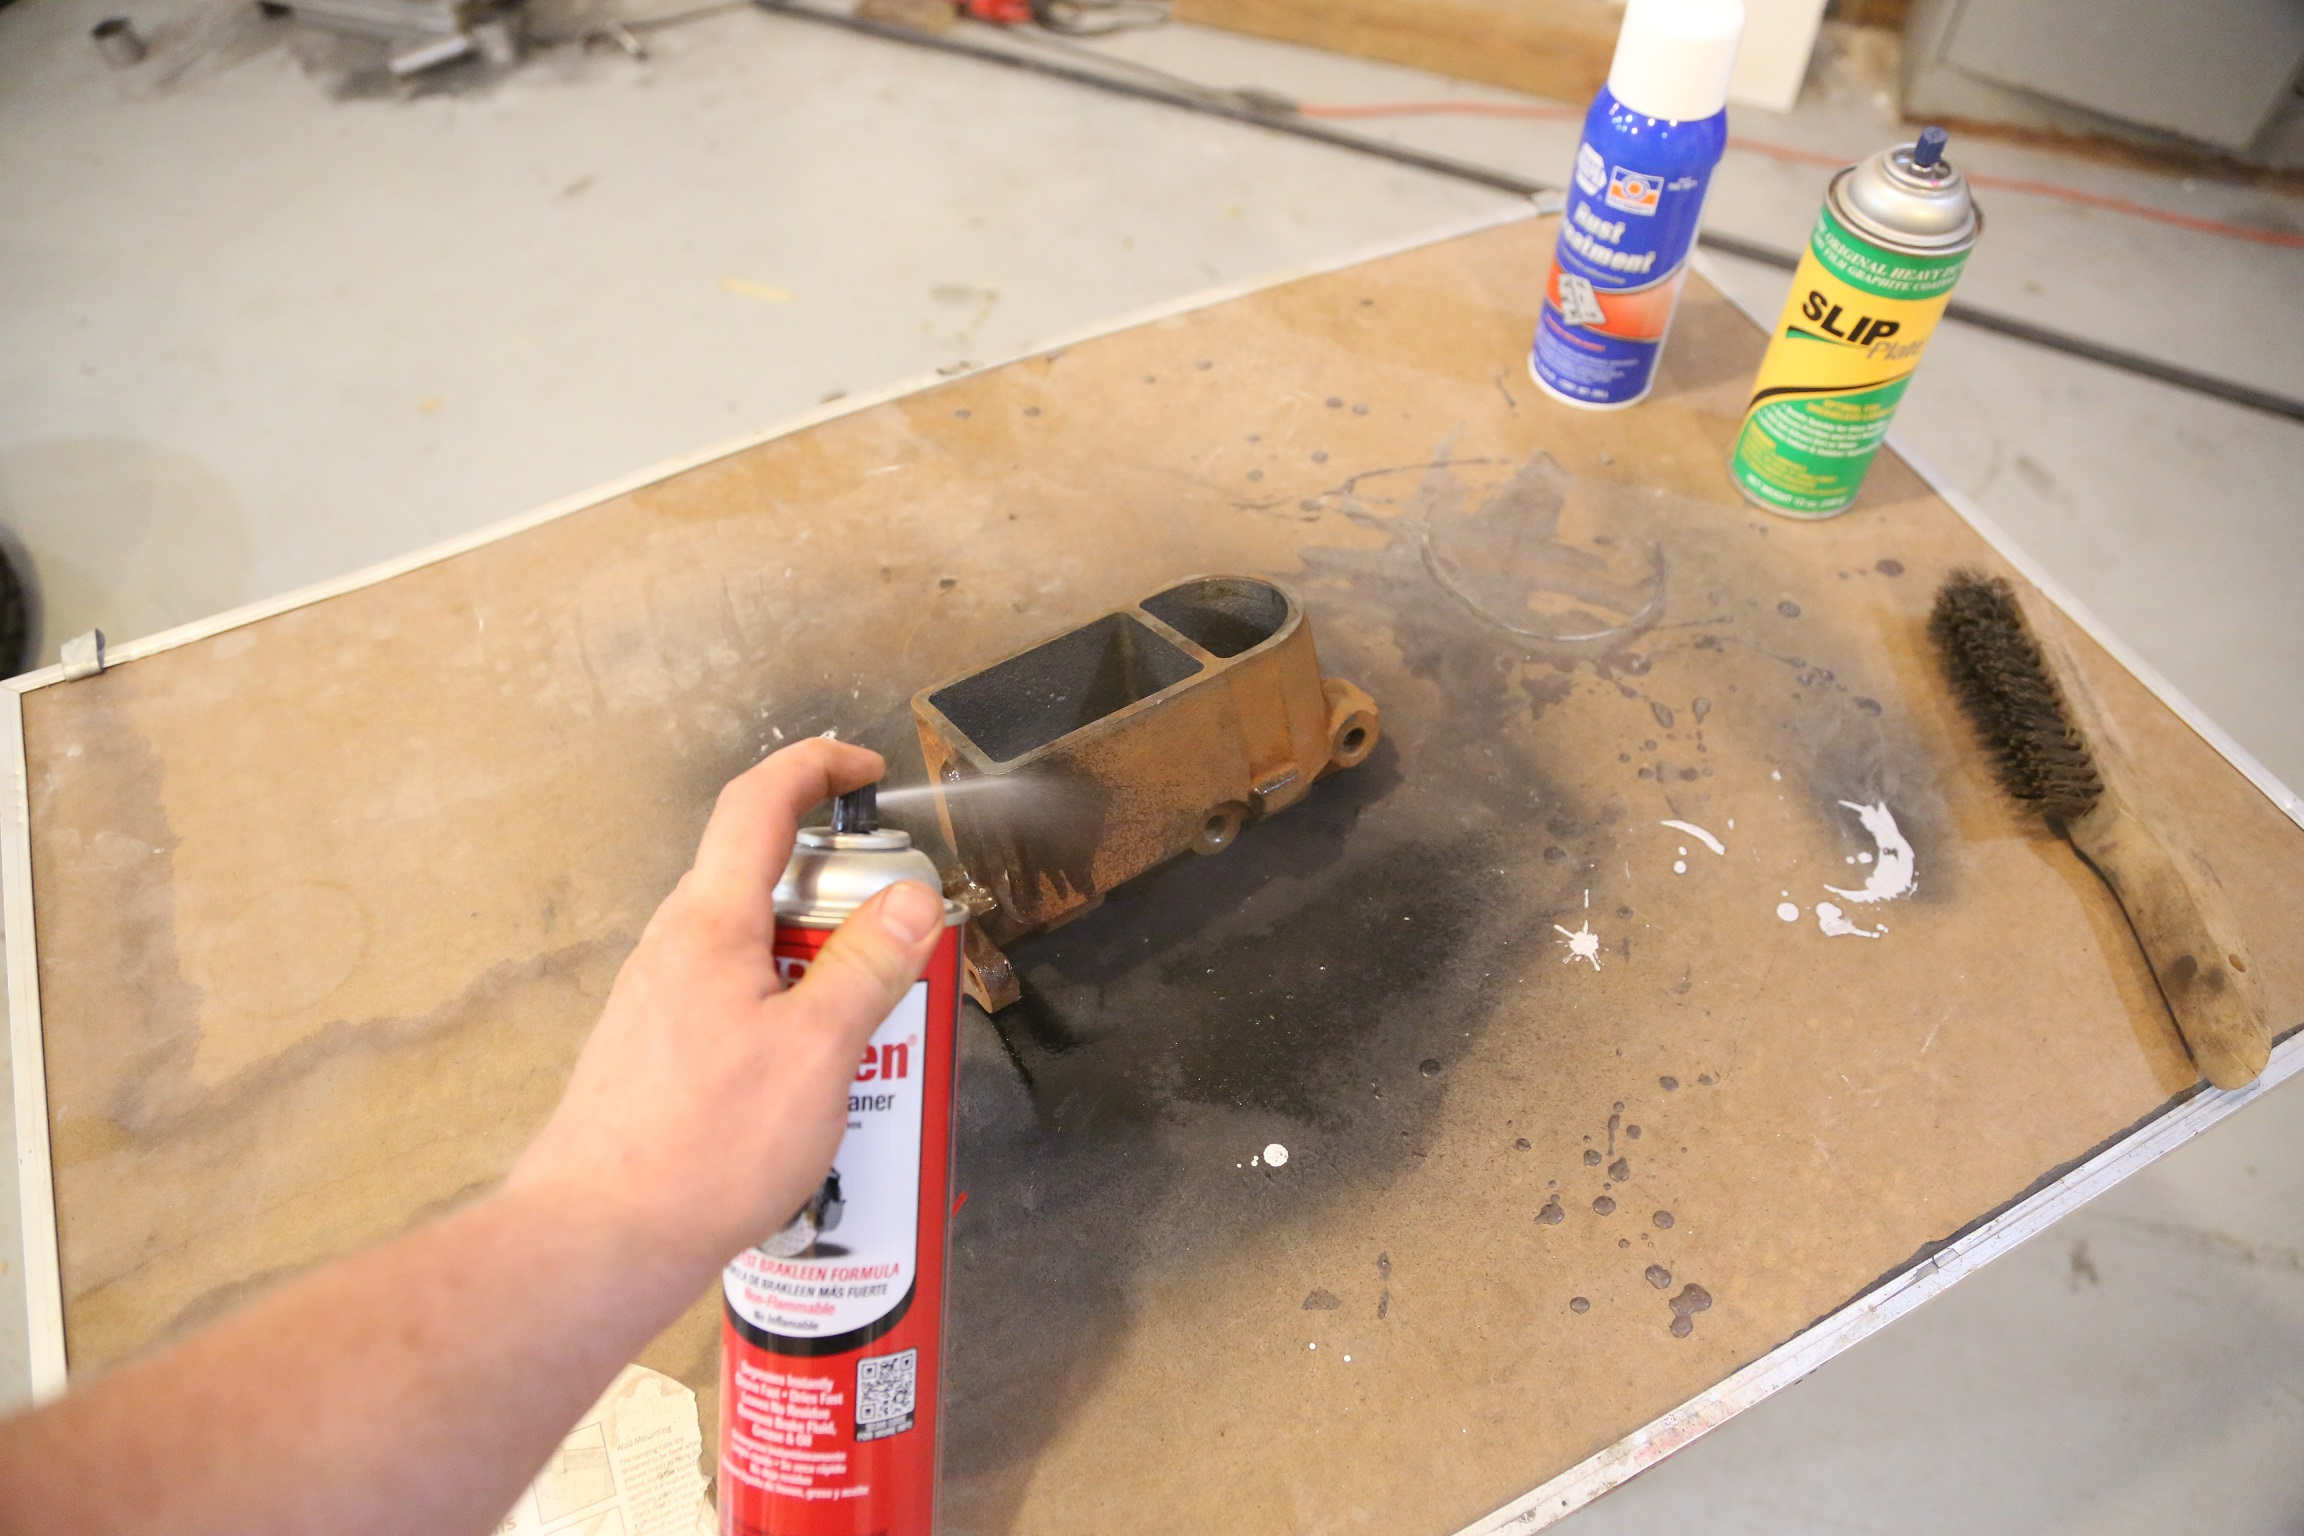 Brake cleaner is great for this type of work because it is safe for rubber parts and it dries fast leaving no residue.